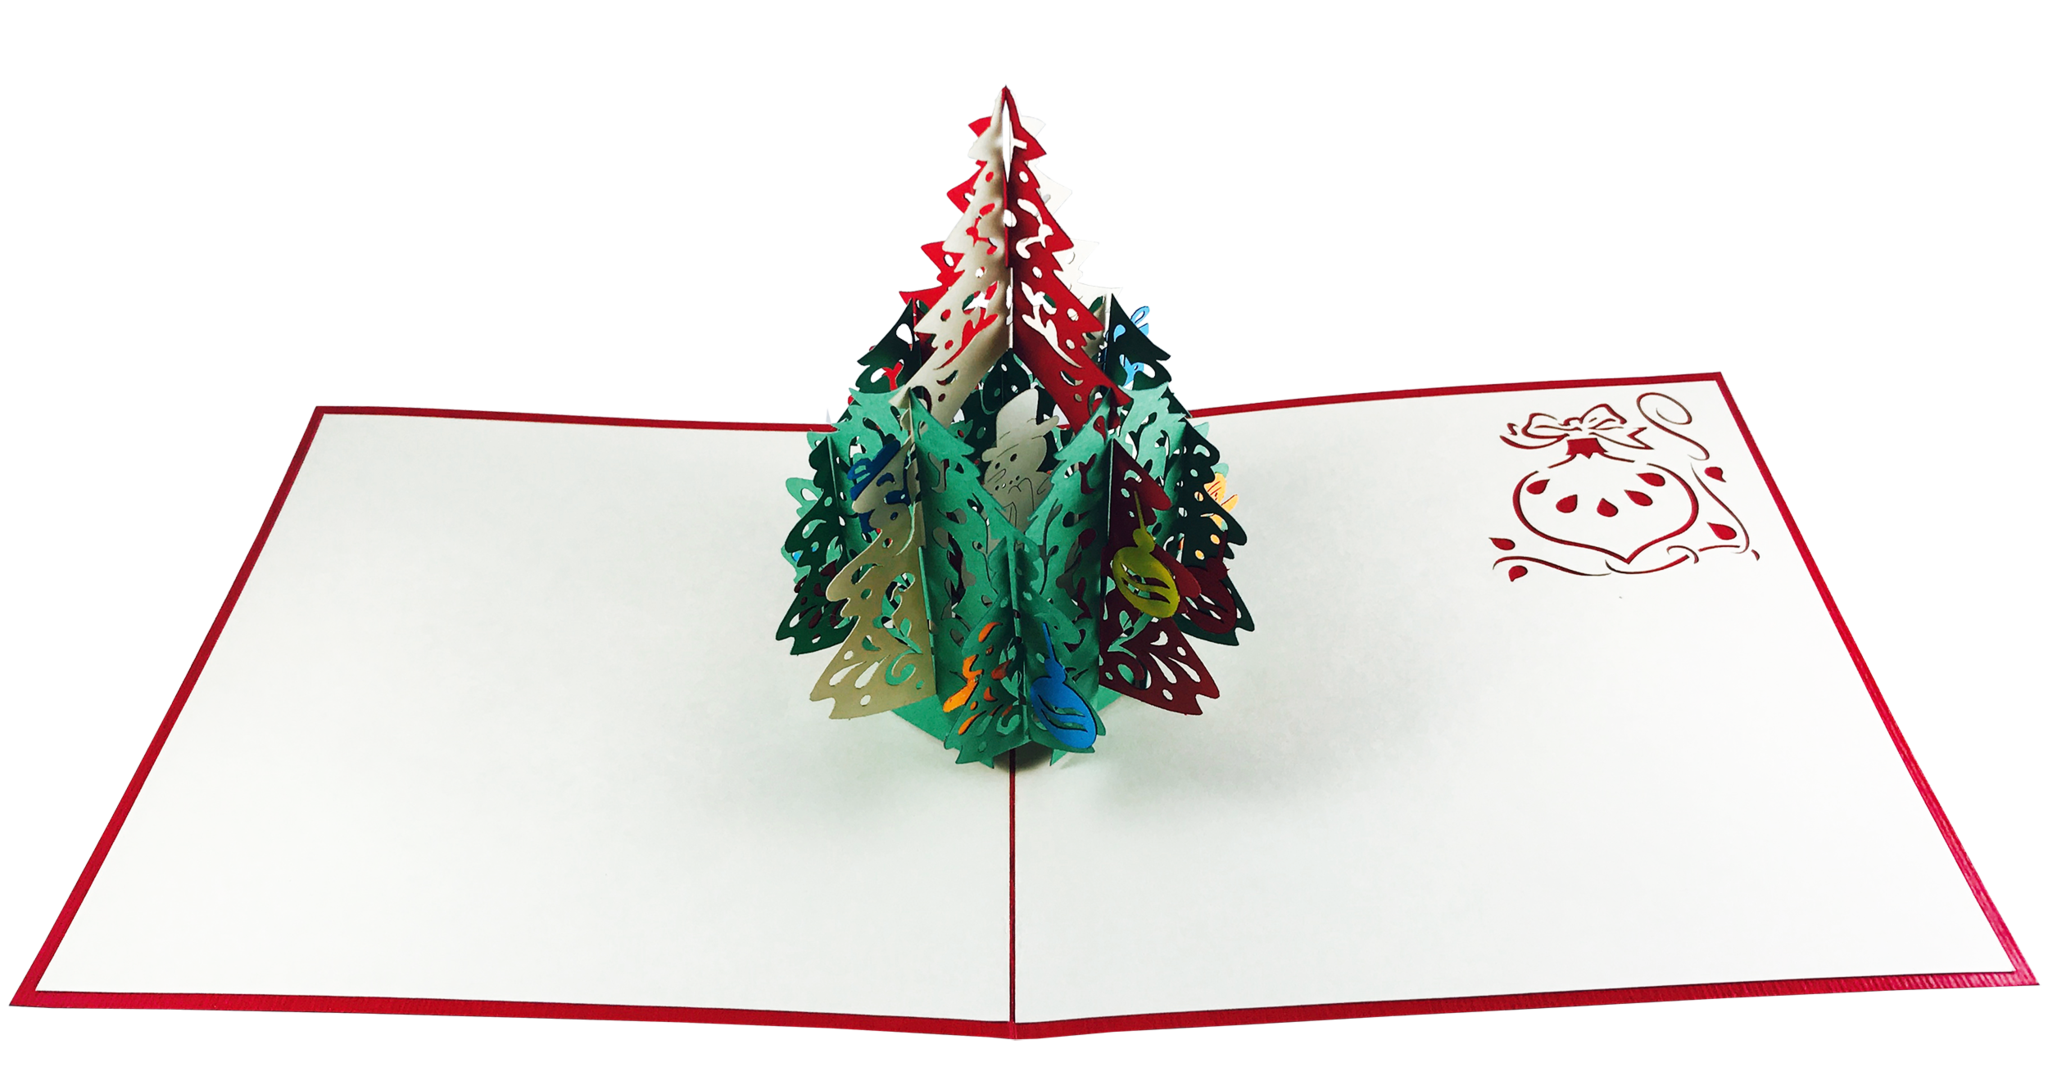 christmas pine tree with ornaments  pop up card  wow pop